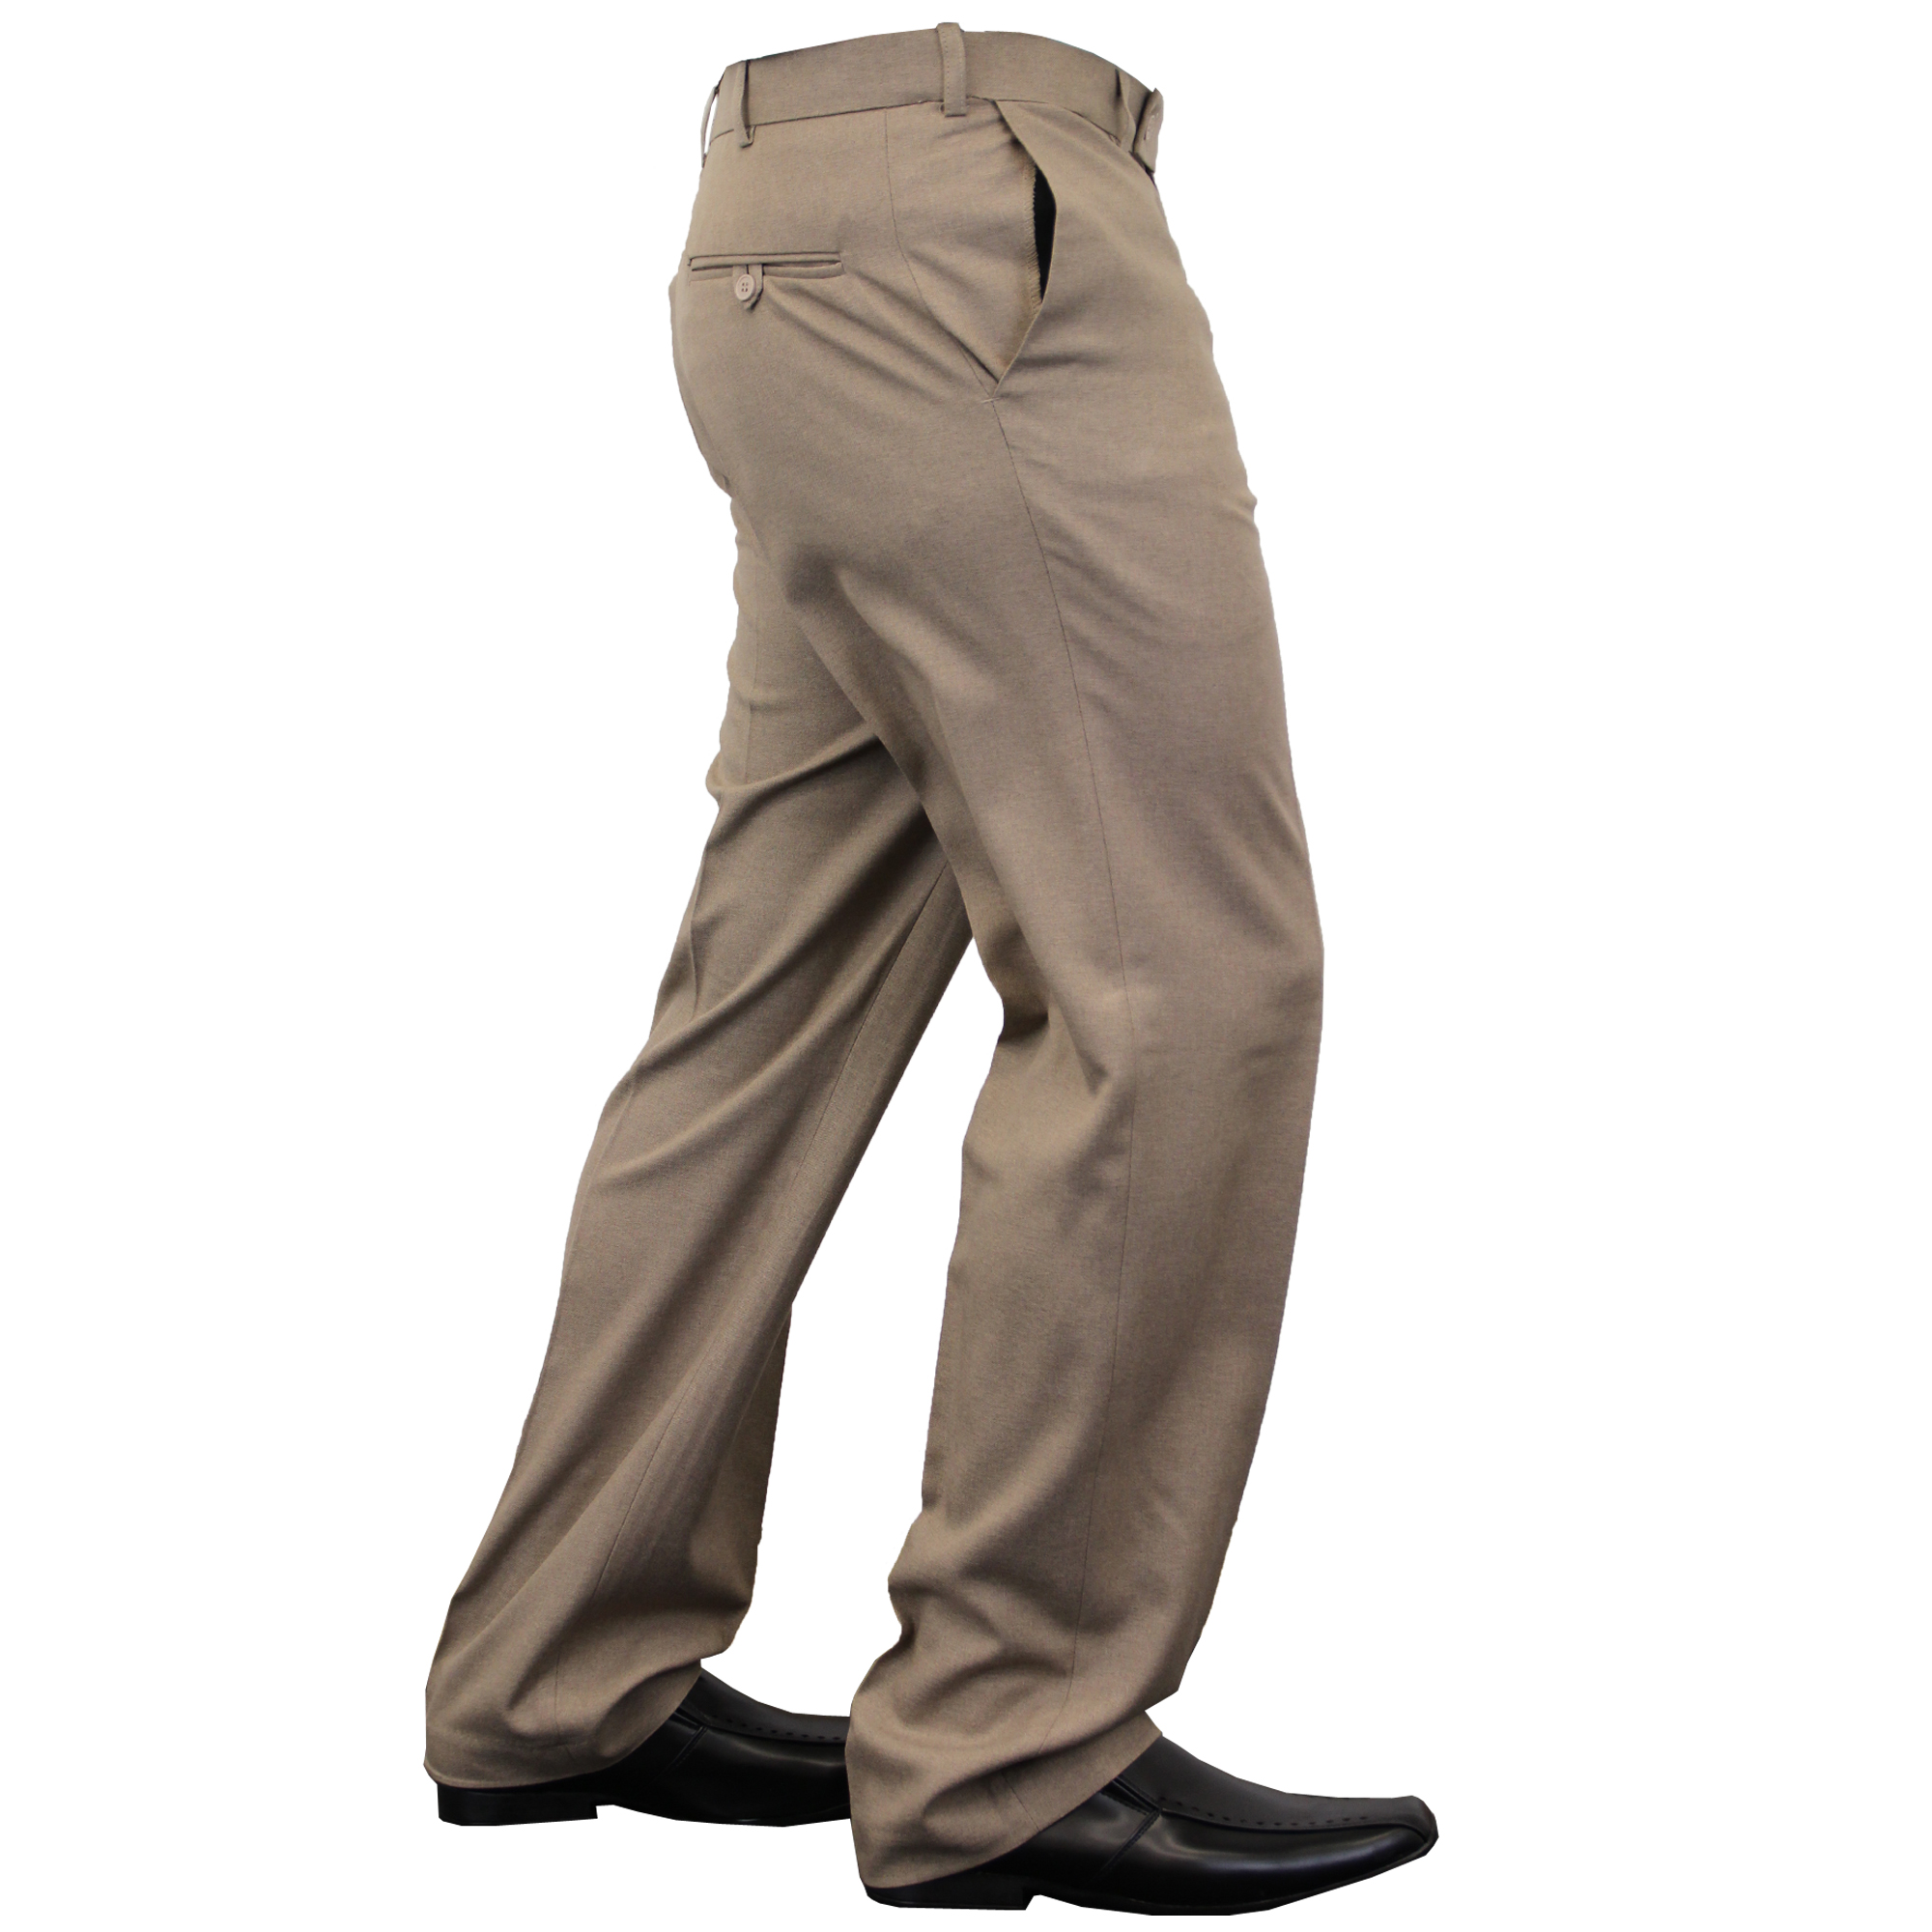 Chums are famous for our collection of men's formal trousers, which includes many well-known quality menswear brands such as Farah, Scopes, Brook Taverner and Pegasus.